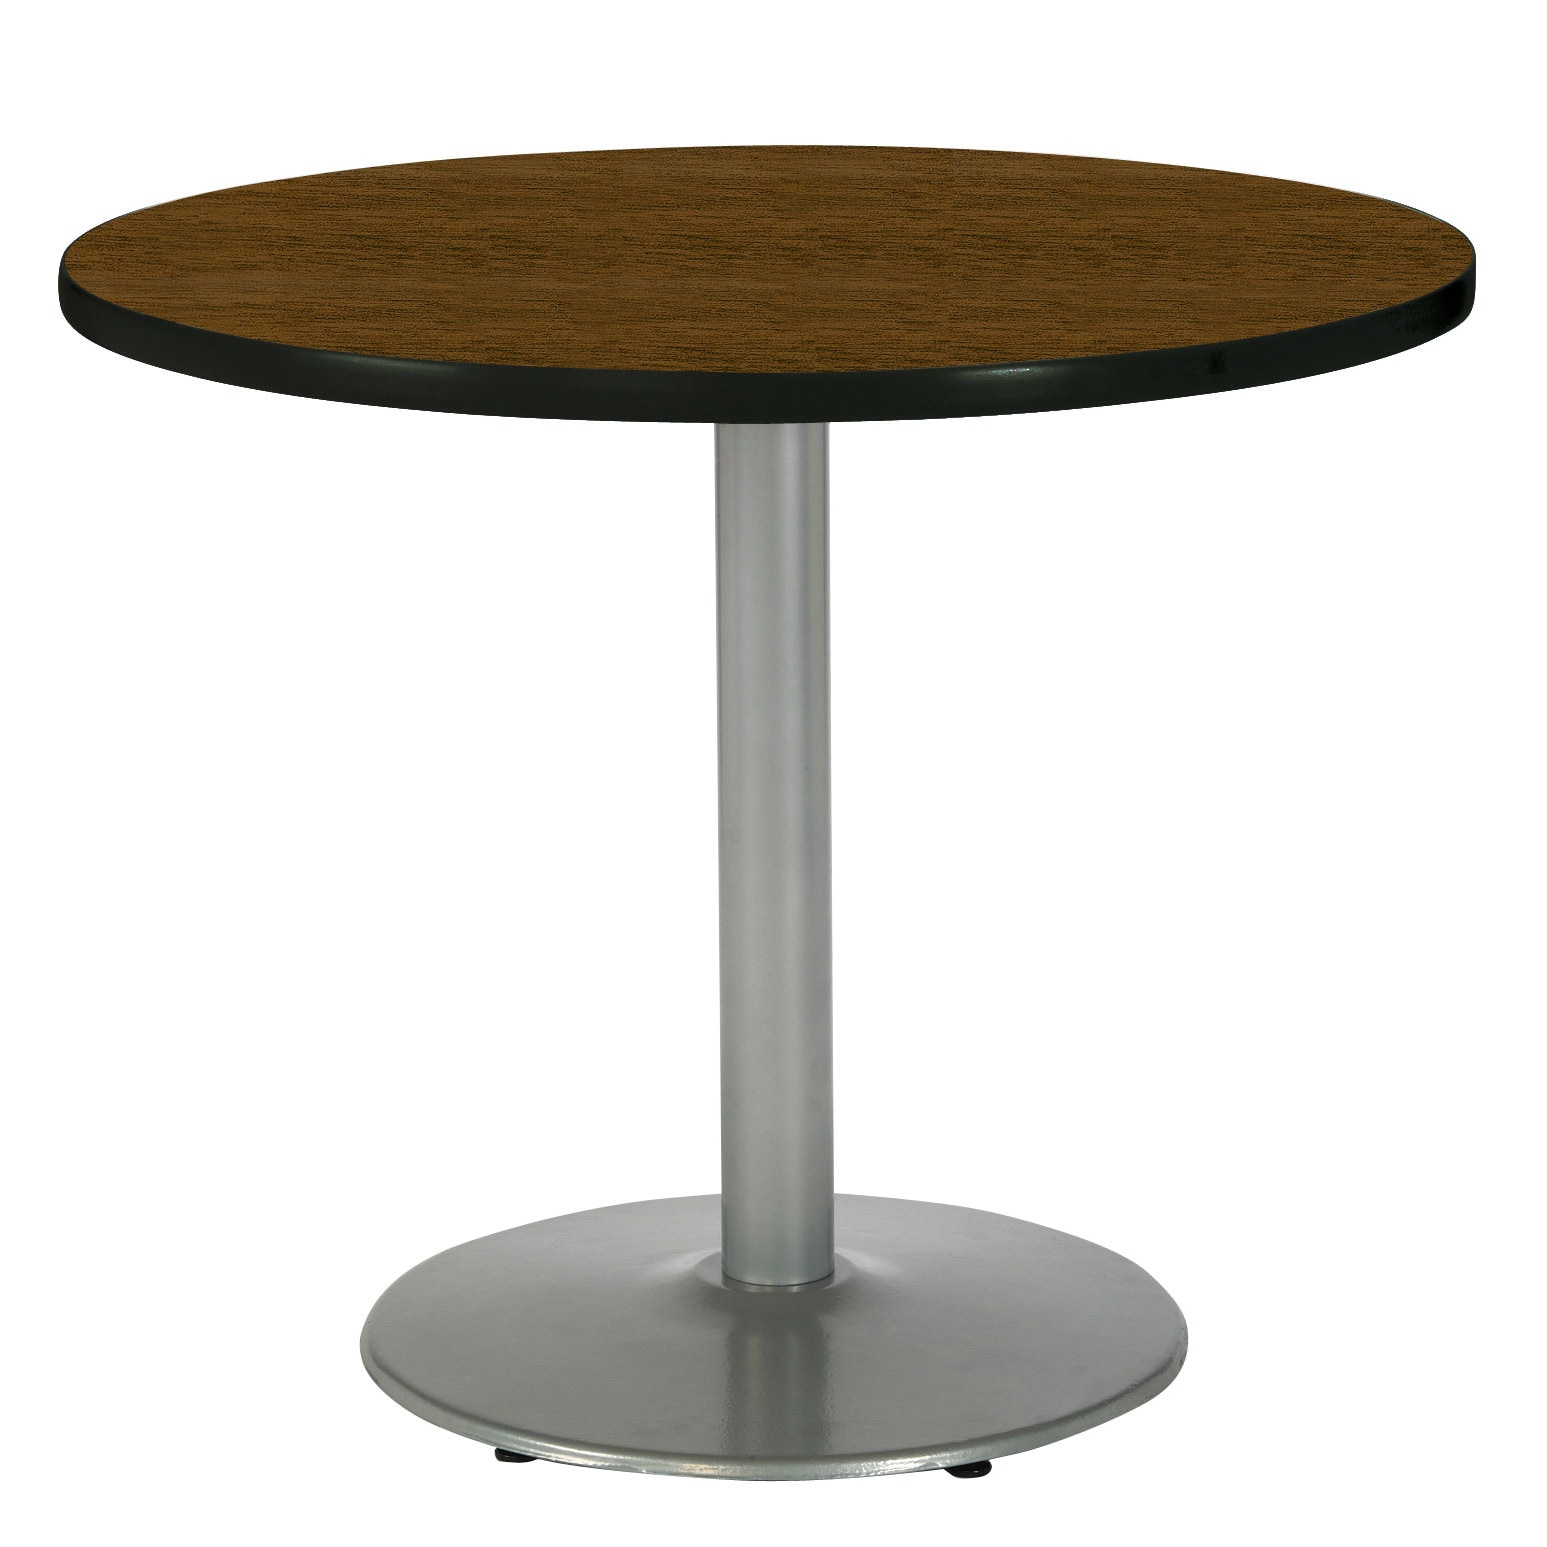 KFI-36in-Round-Pedestal-Table-with-Round-Silver-Base thumbnail 7